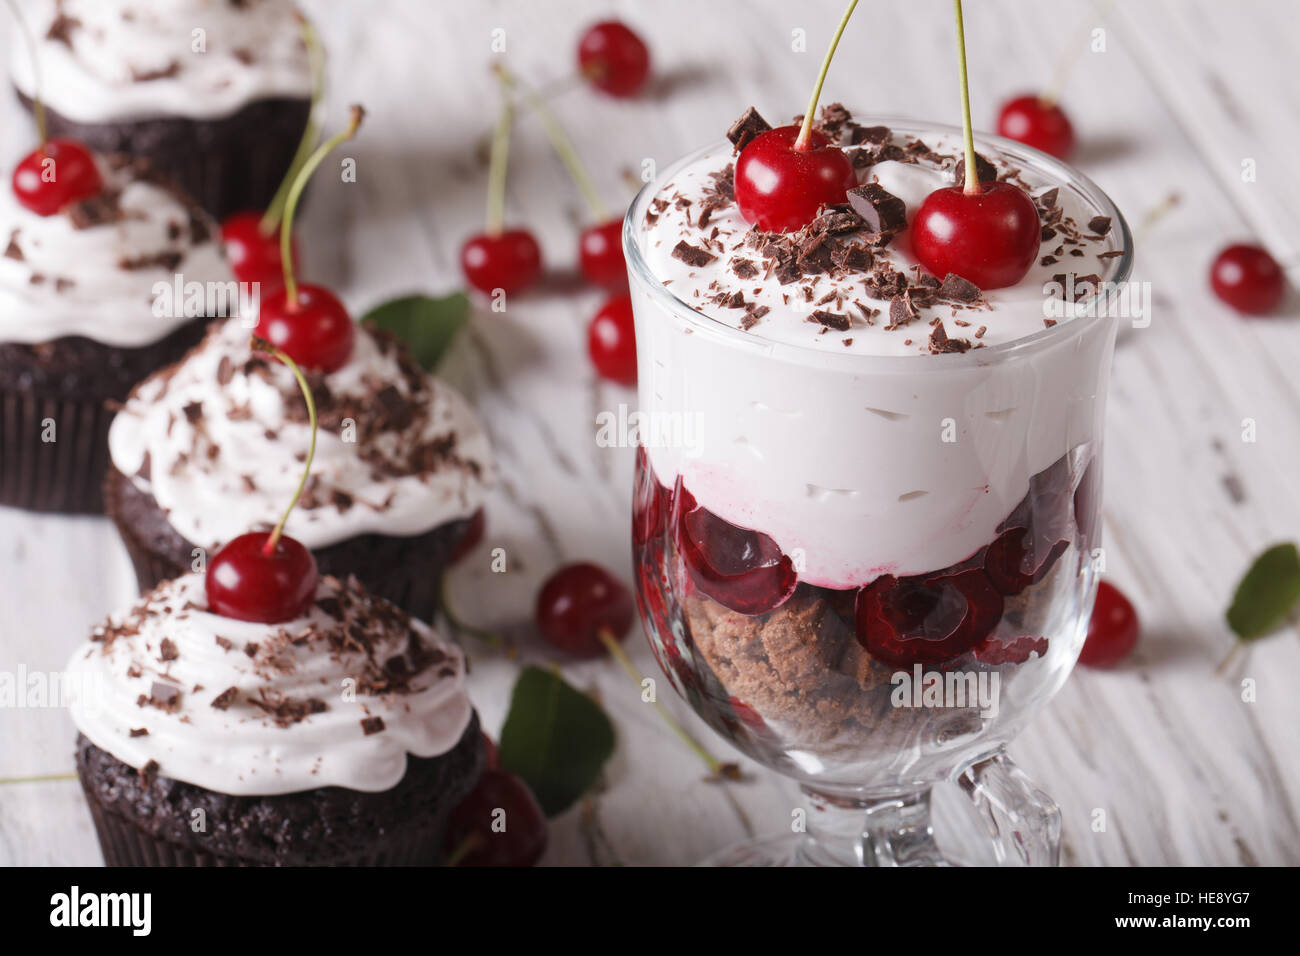 Dessert cherry black forest and cupcakes on a table close-up. horizontal - Stock Image